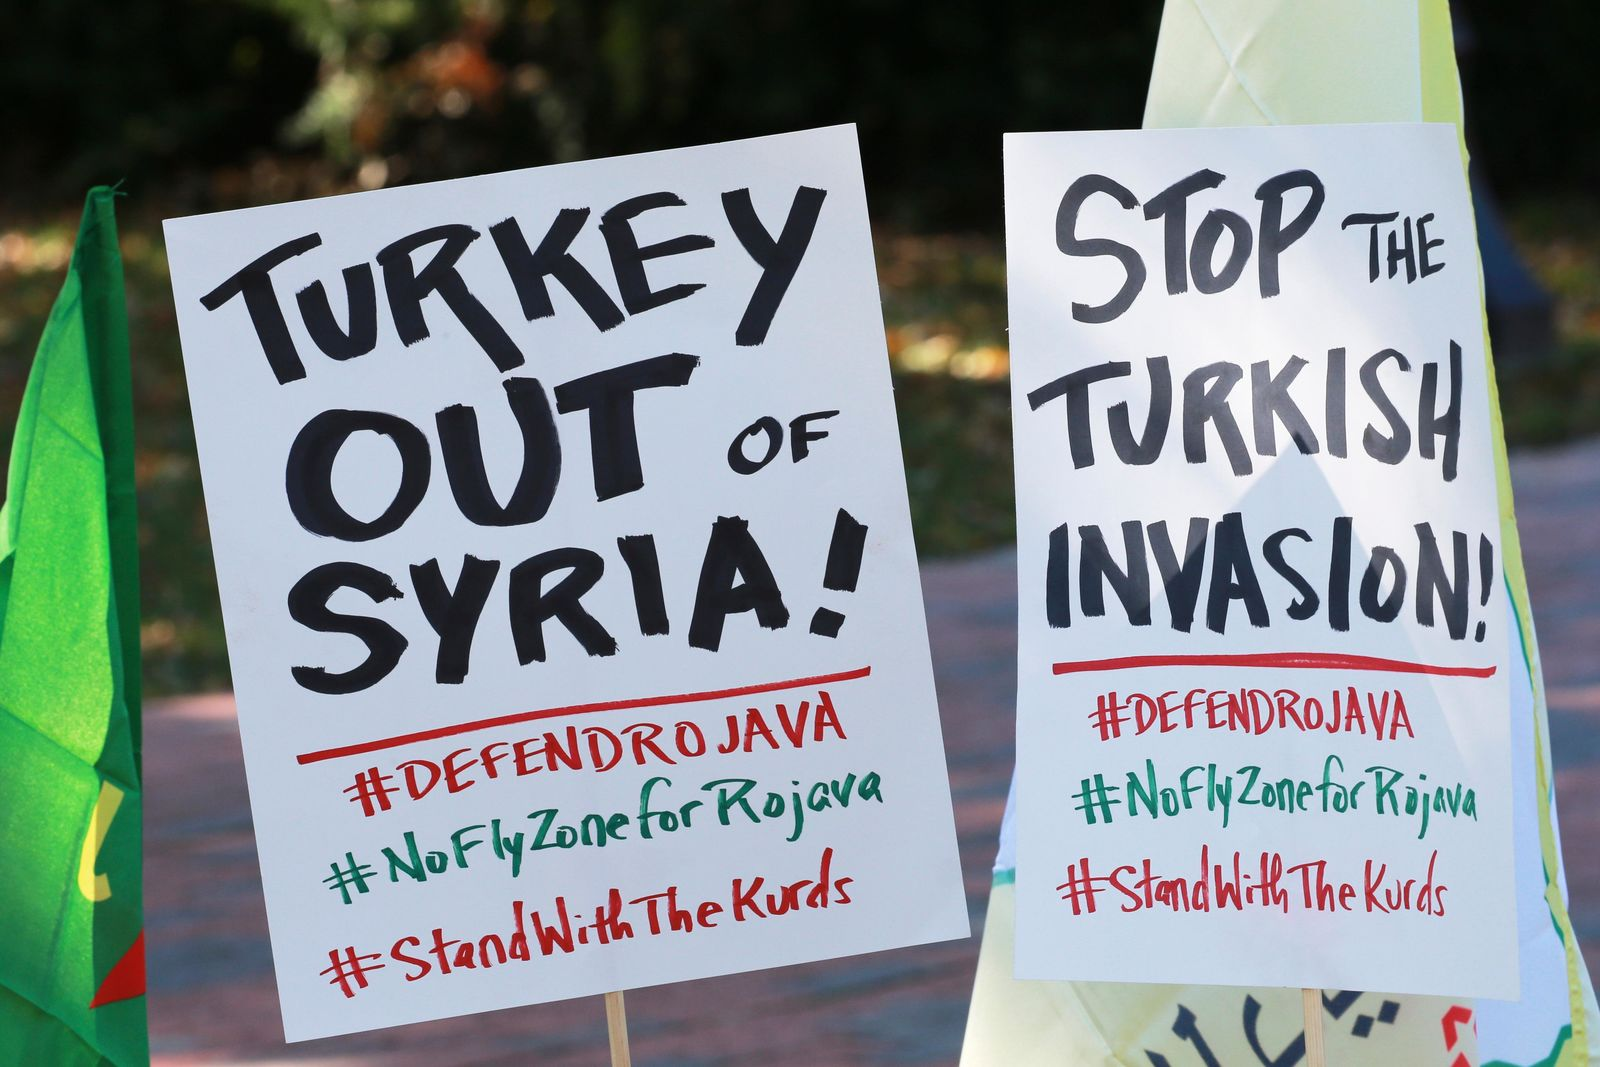 A small group of protesters post signs as they prepare for a rally against Turkish President Recep Tayyip Erdogan at Lafayette Square in front of the White House in Wednesday, Nov. 13, 2019, in Washington. Erdogan is meeting with President Donald Trump. (AP Photo/Steve Helber)